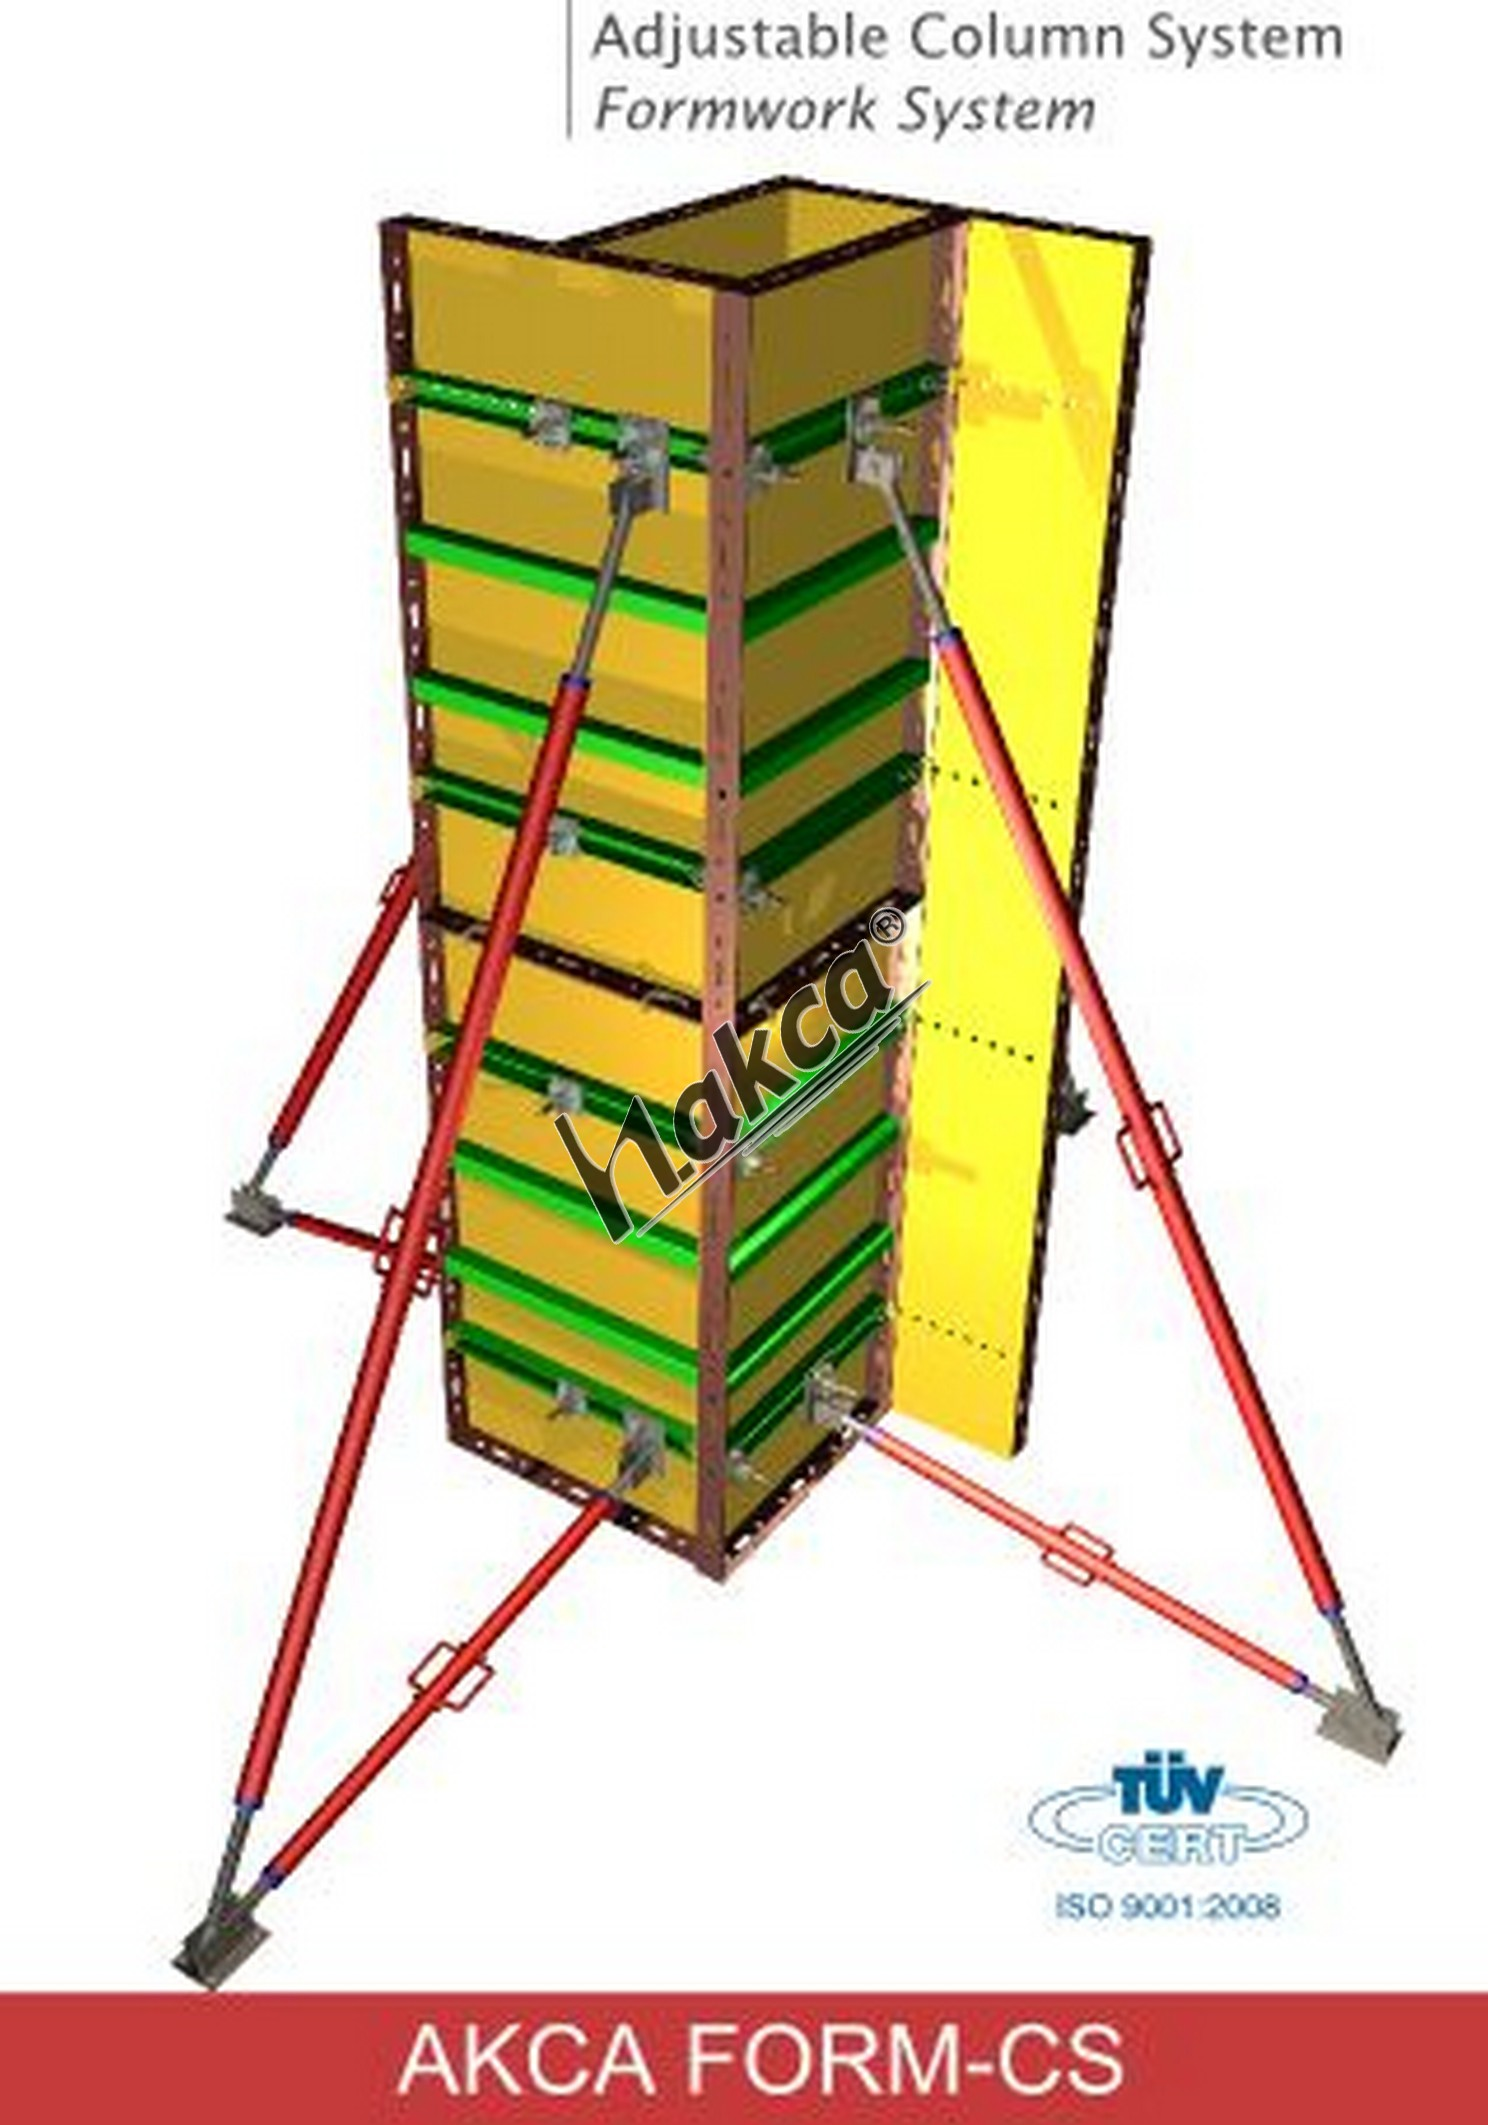 Adjustable Coloumn Formwork FORM-CS